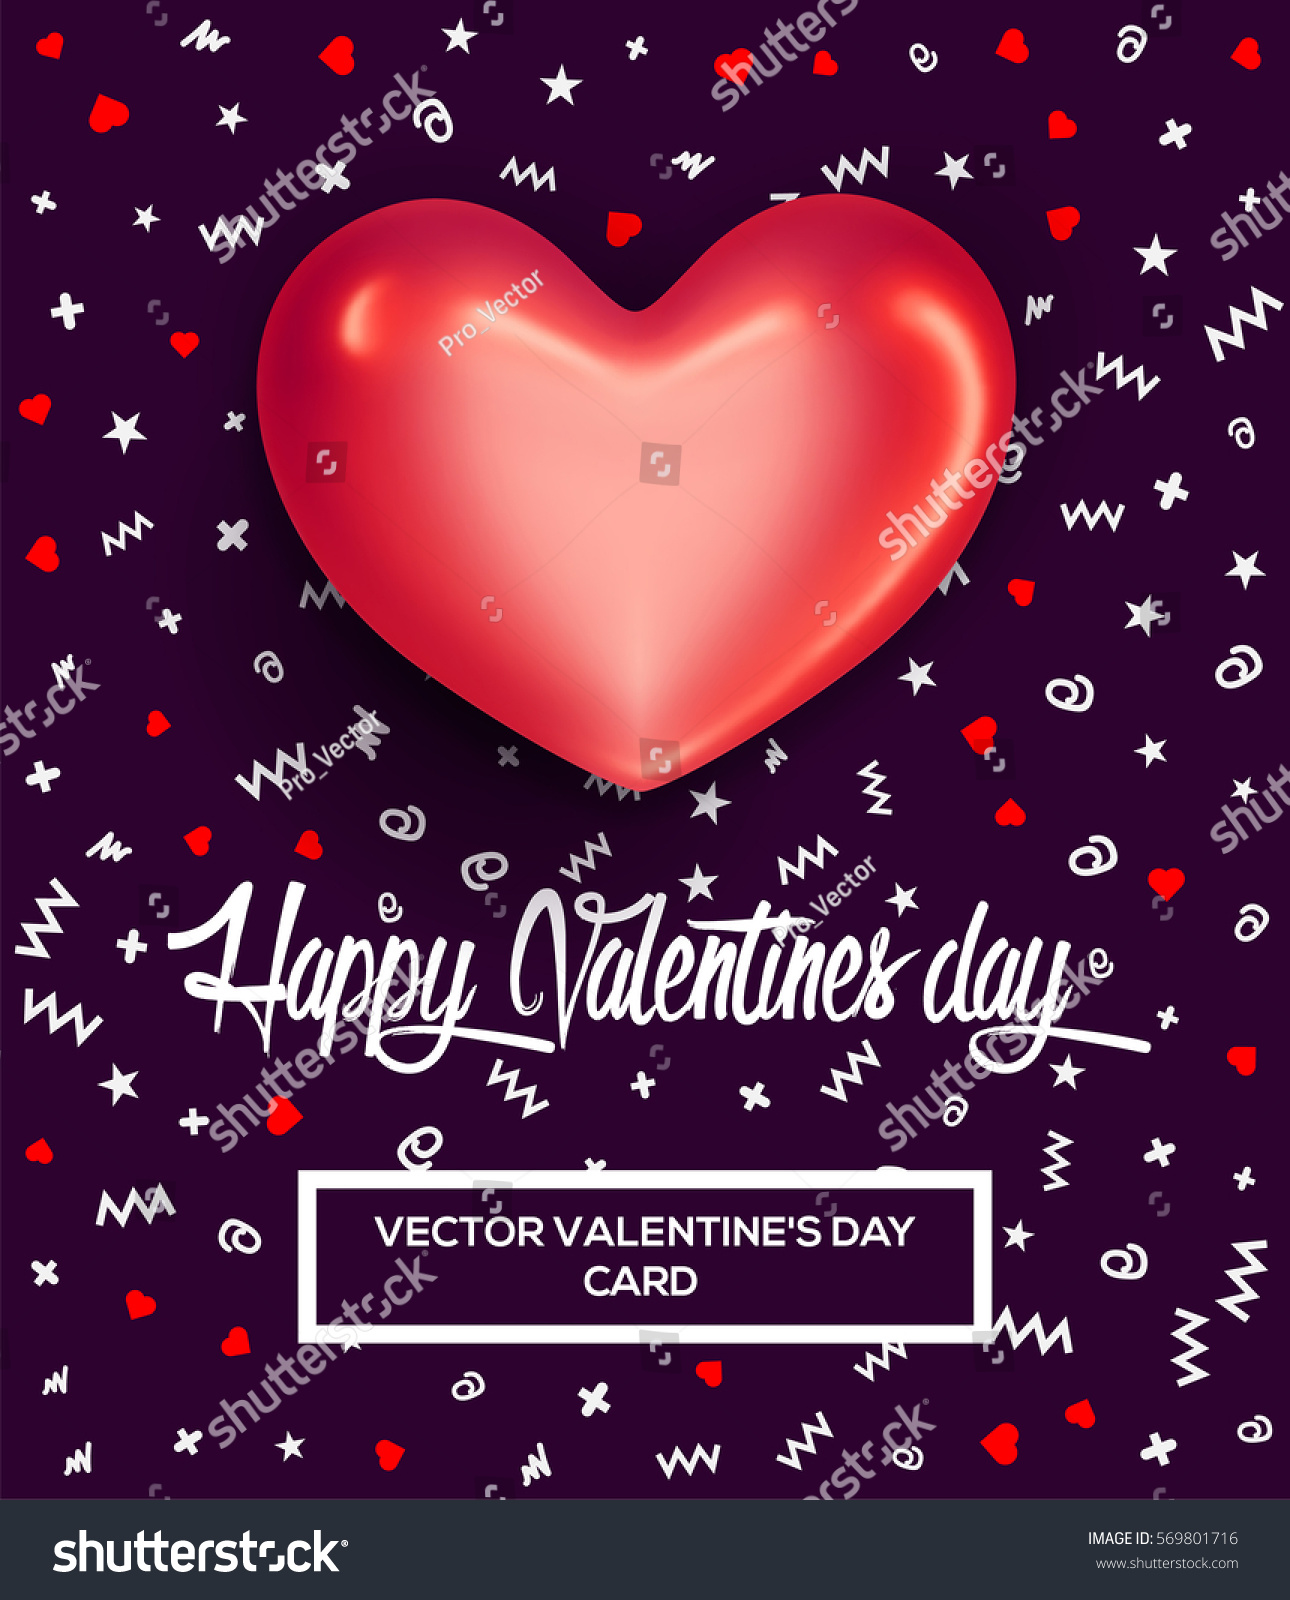 Happy Valentines Day Greeting Card Poster Vector 569801716 – Valentine Day Greetings Card